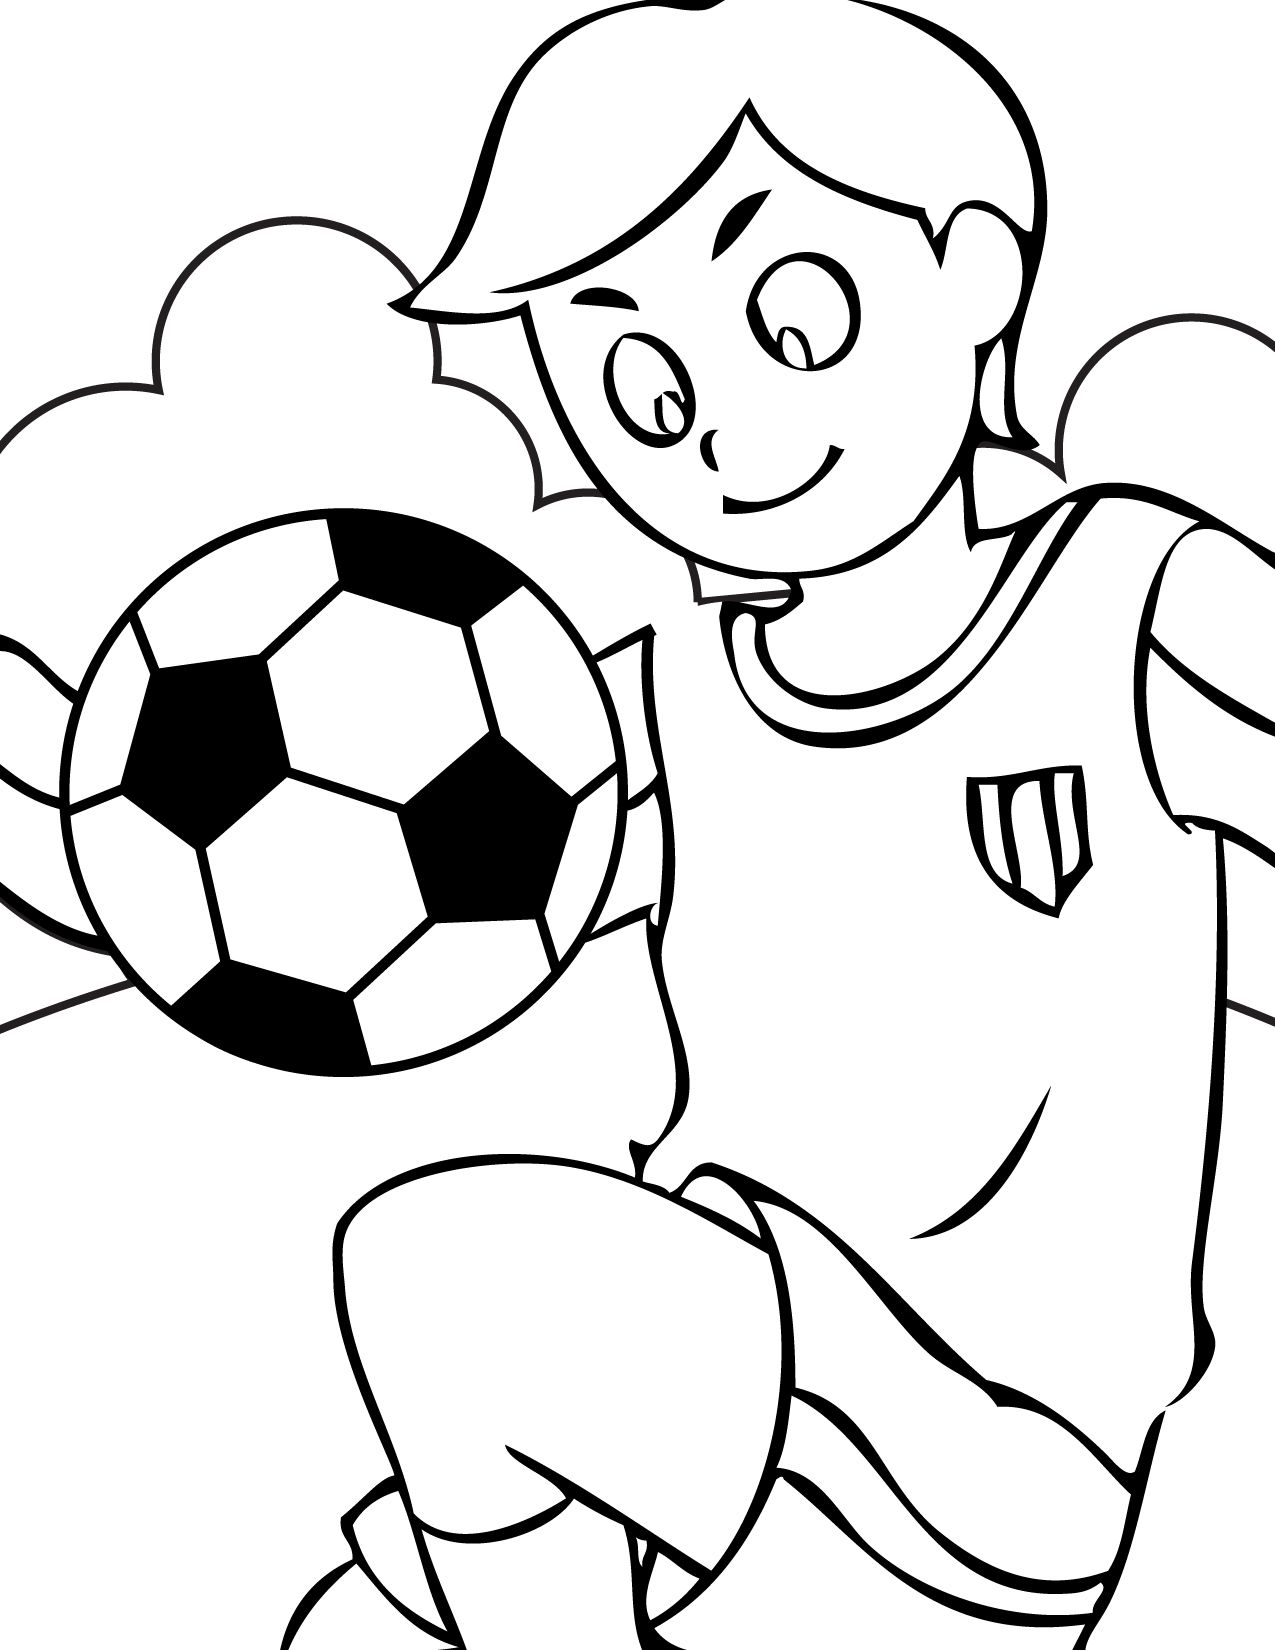 Free Printable Sports Coloring Pages For Kids Colouring Pages